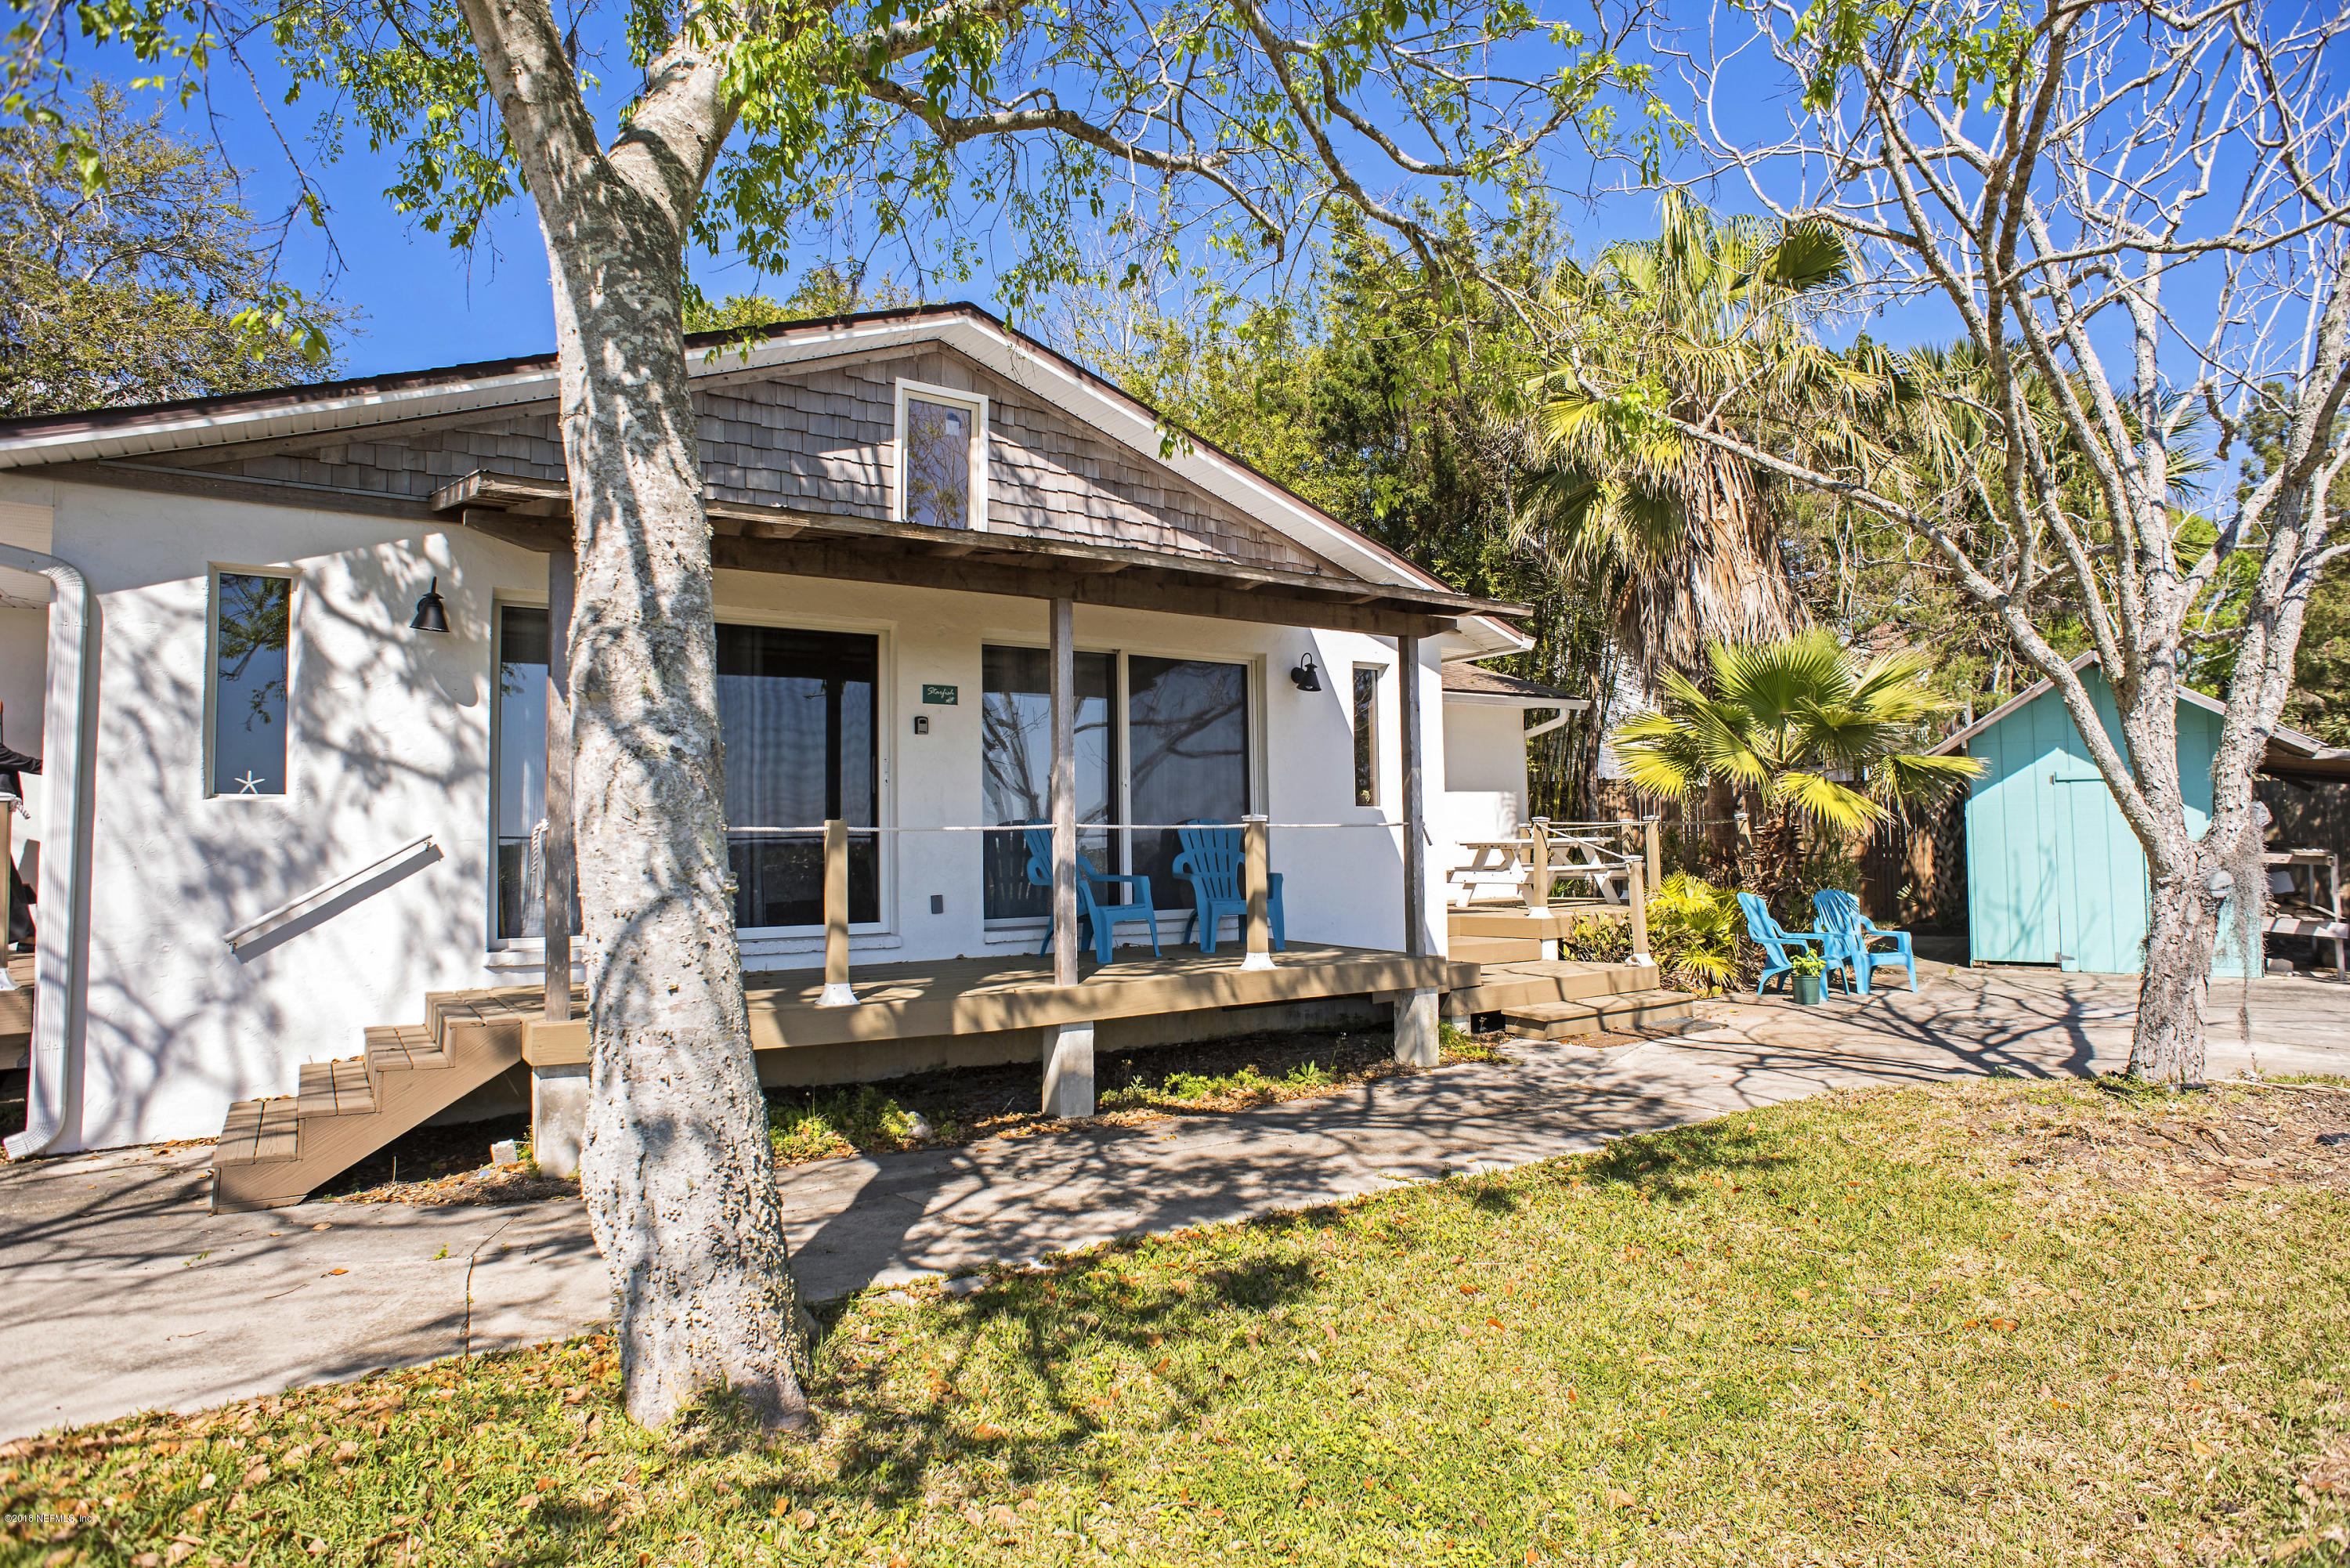 56 DUFFERIN, ST AUGUSTINE, FLORIDA 32084, 4 Bedrooms Bedrooms, ,2 BathroomsBathrooms,Multi family,For sale,DUFFERIN,927709